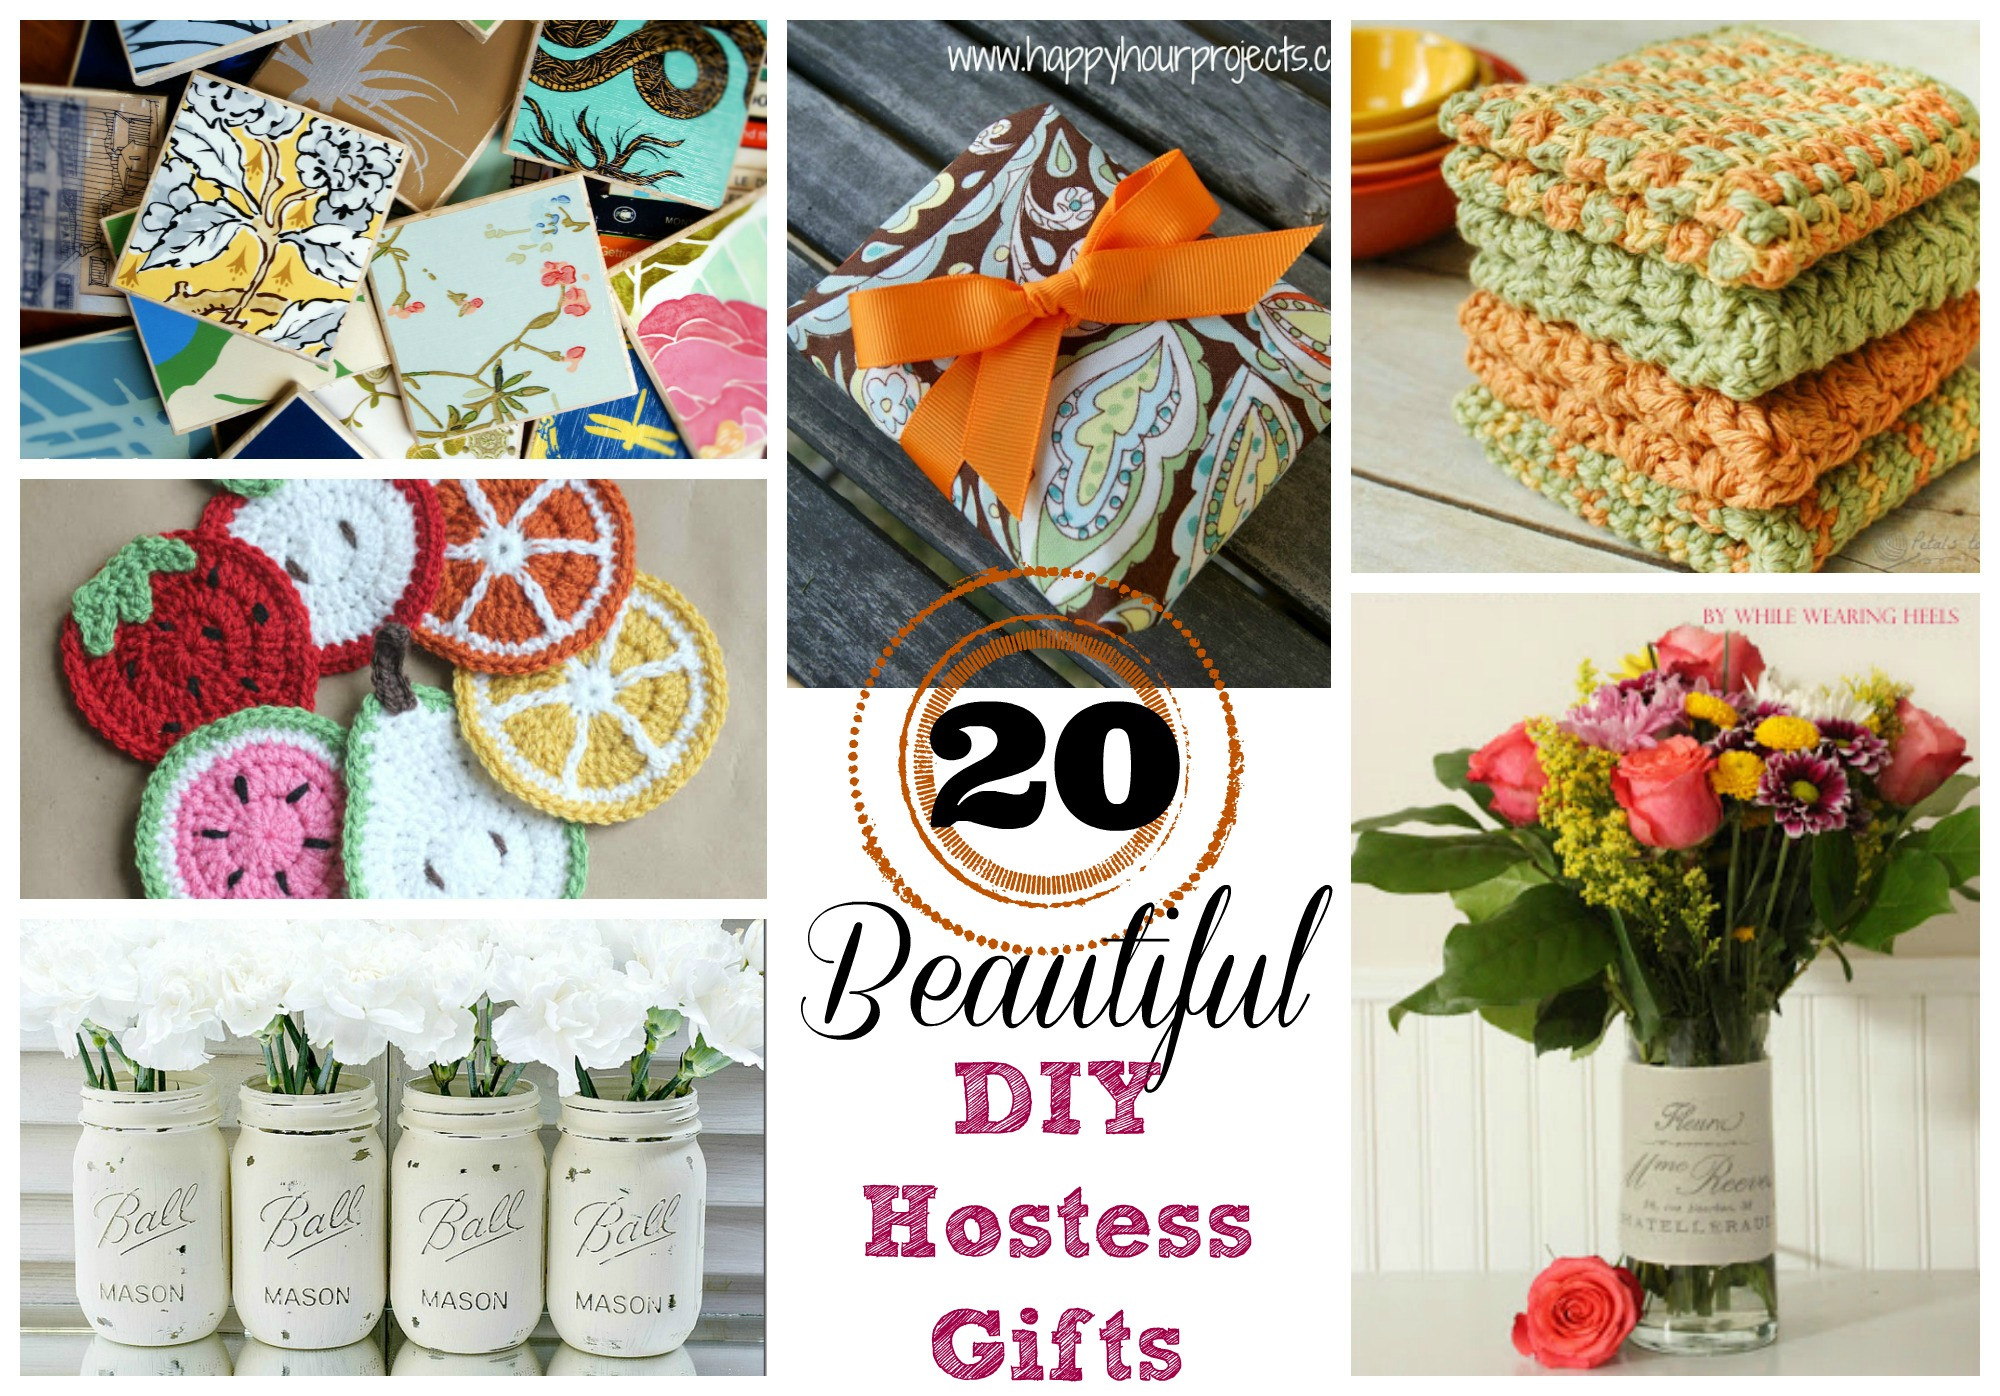 Best ideas about Host Gift Ideas . Save or Pin 20 Beautiful DIY Hostess Gifts Suburble Now.